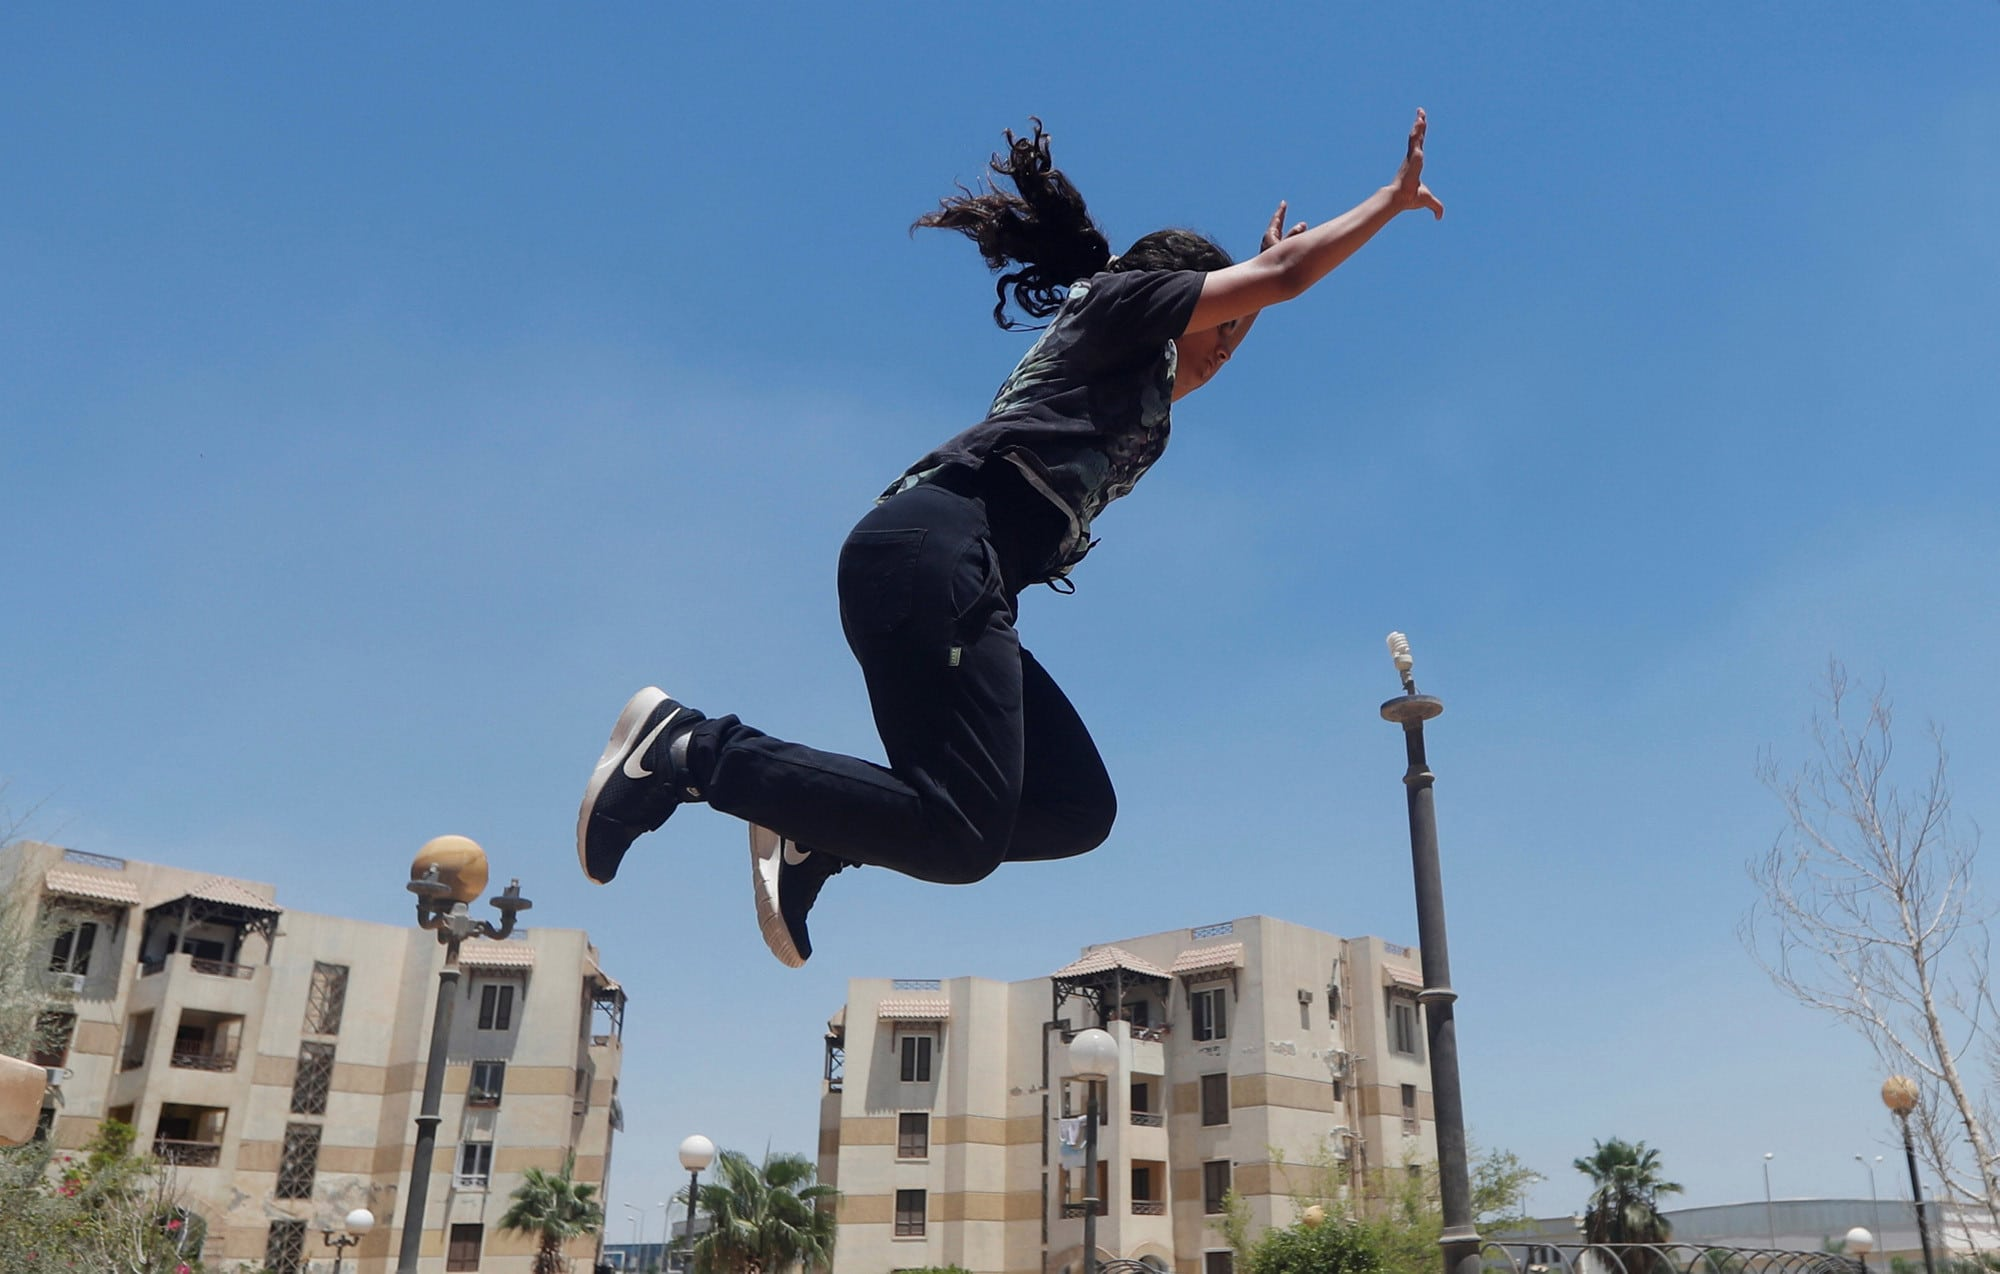 Egyptian News: women challenge social norms by practicing Parkour